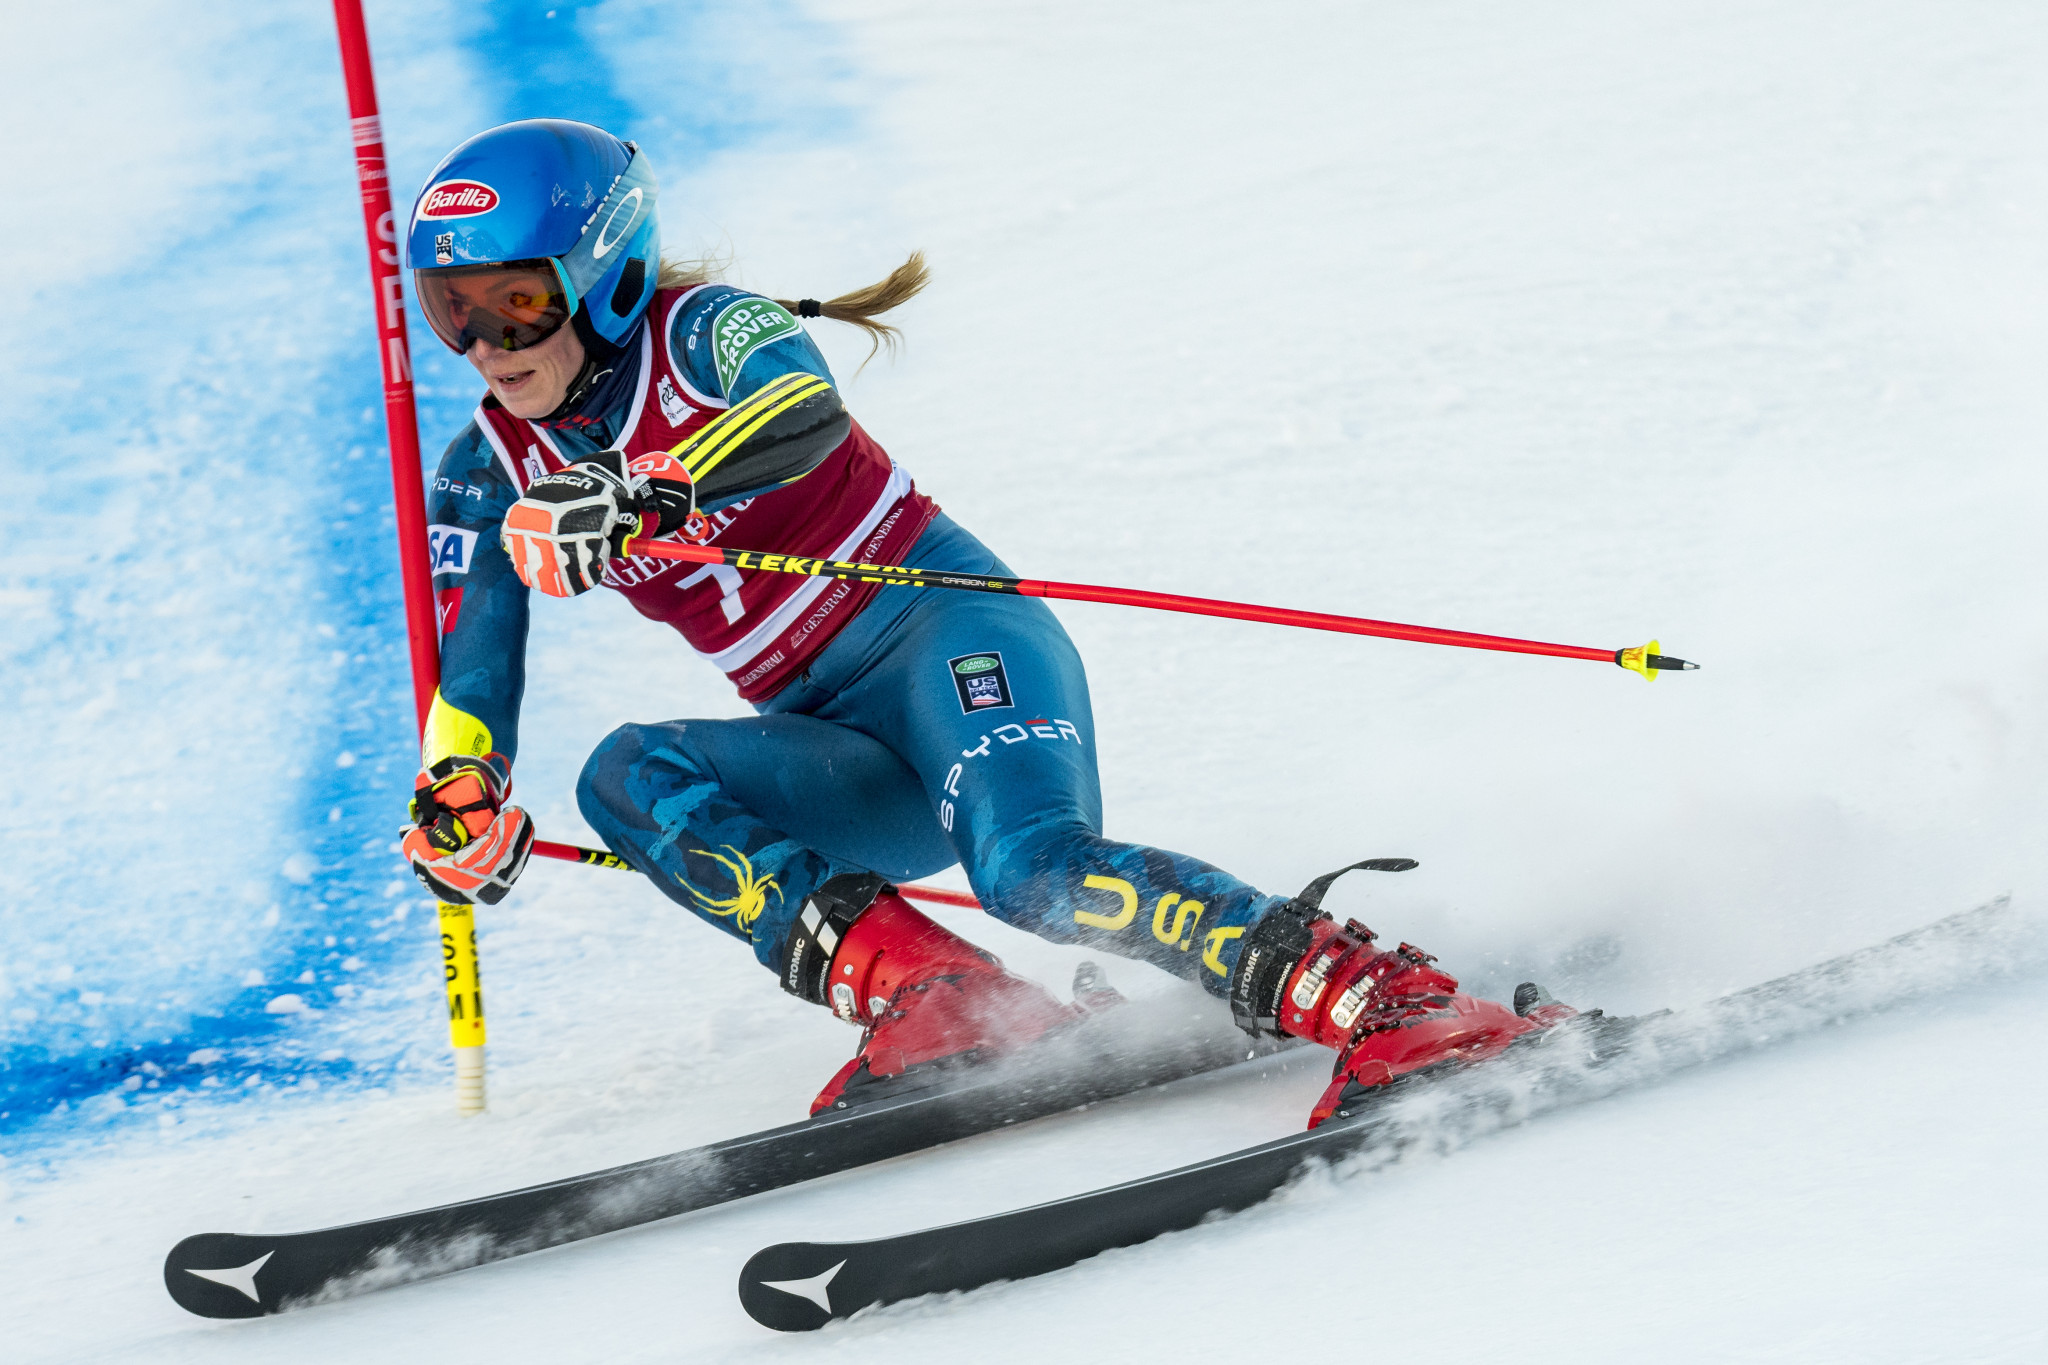 America's Mikaela Shiffrin remains Petra Vlhova's main rival in the slalom ©Getty Images